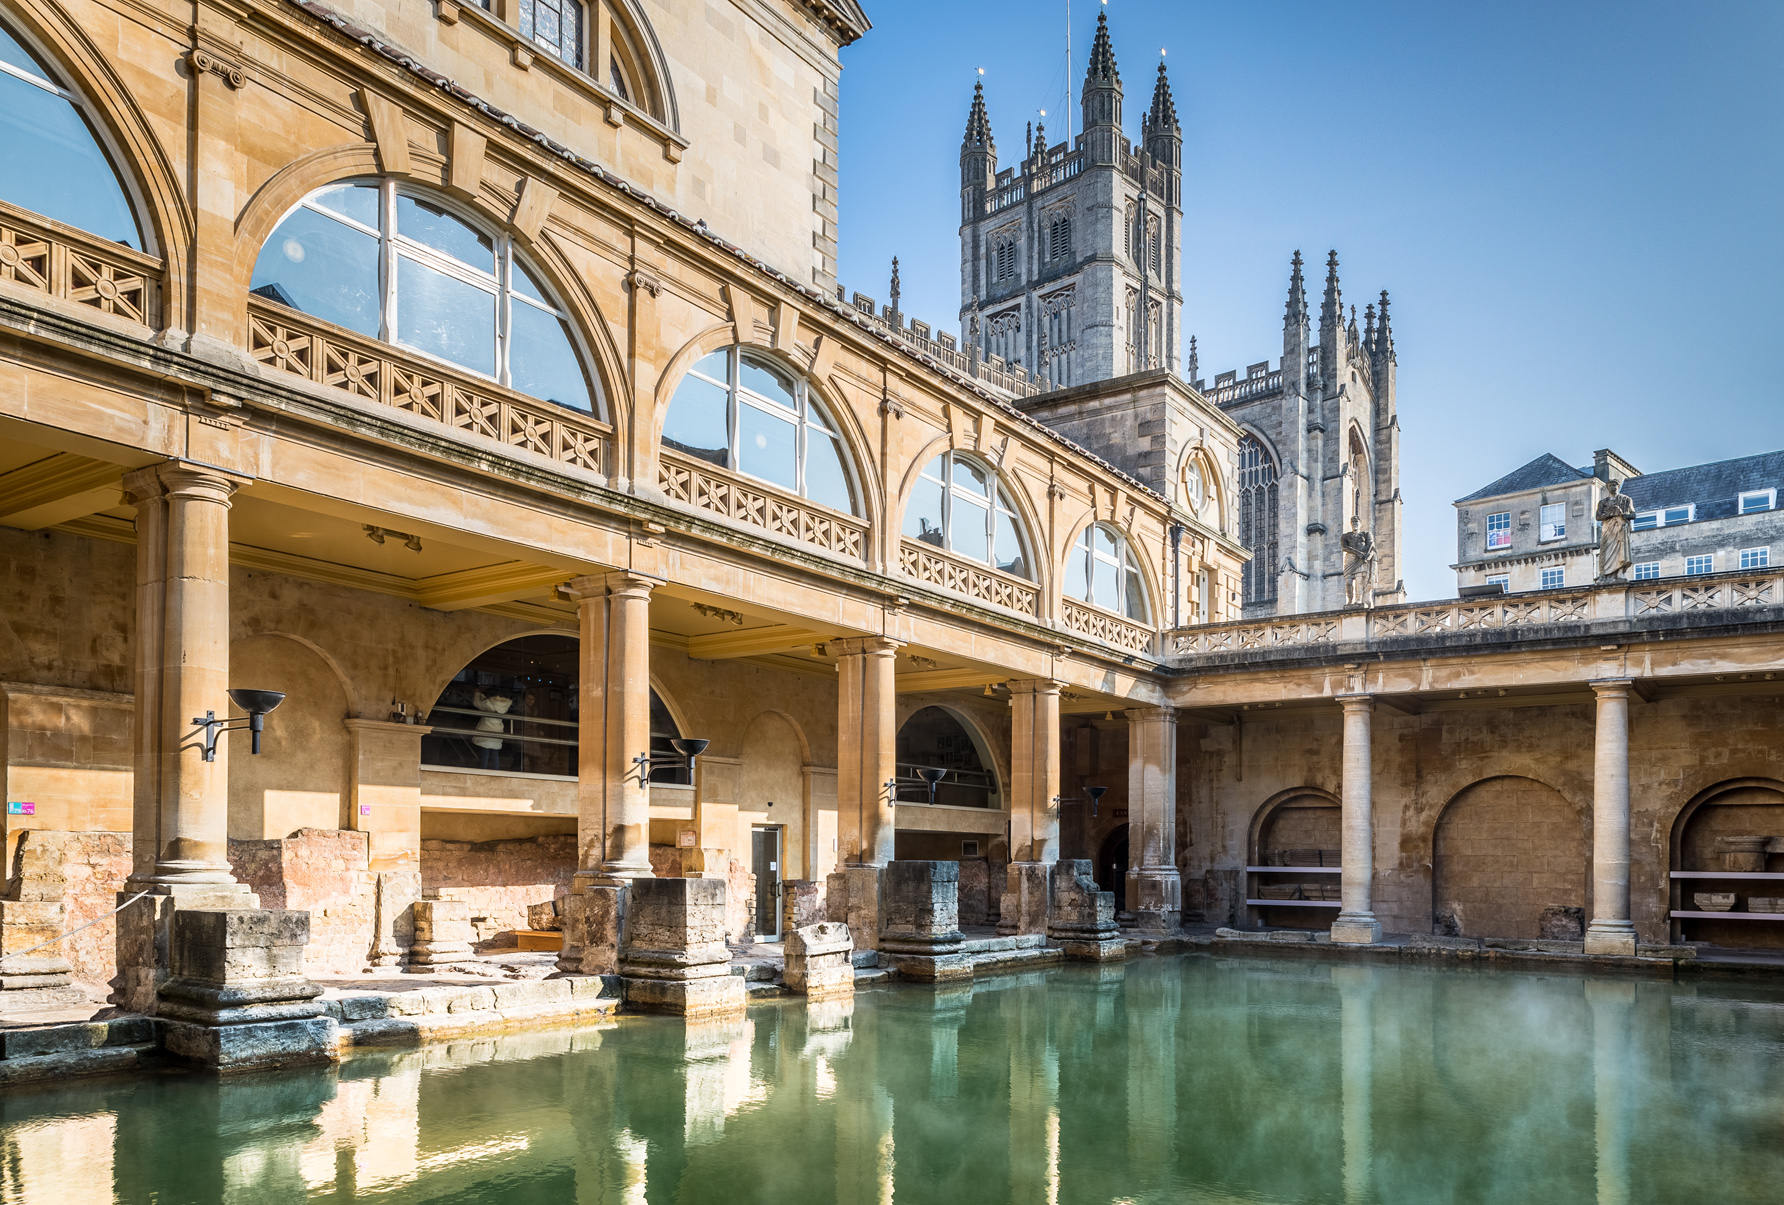 A winter visit to Bath - Miss Foodwise